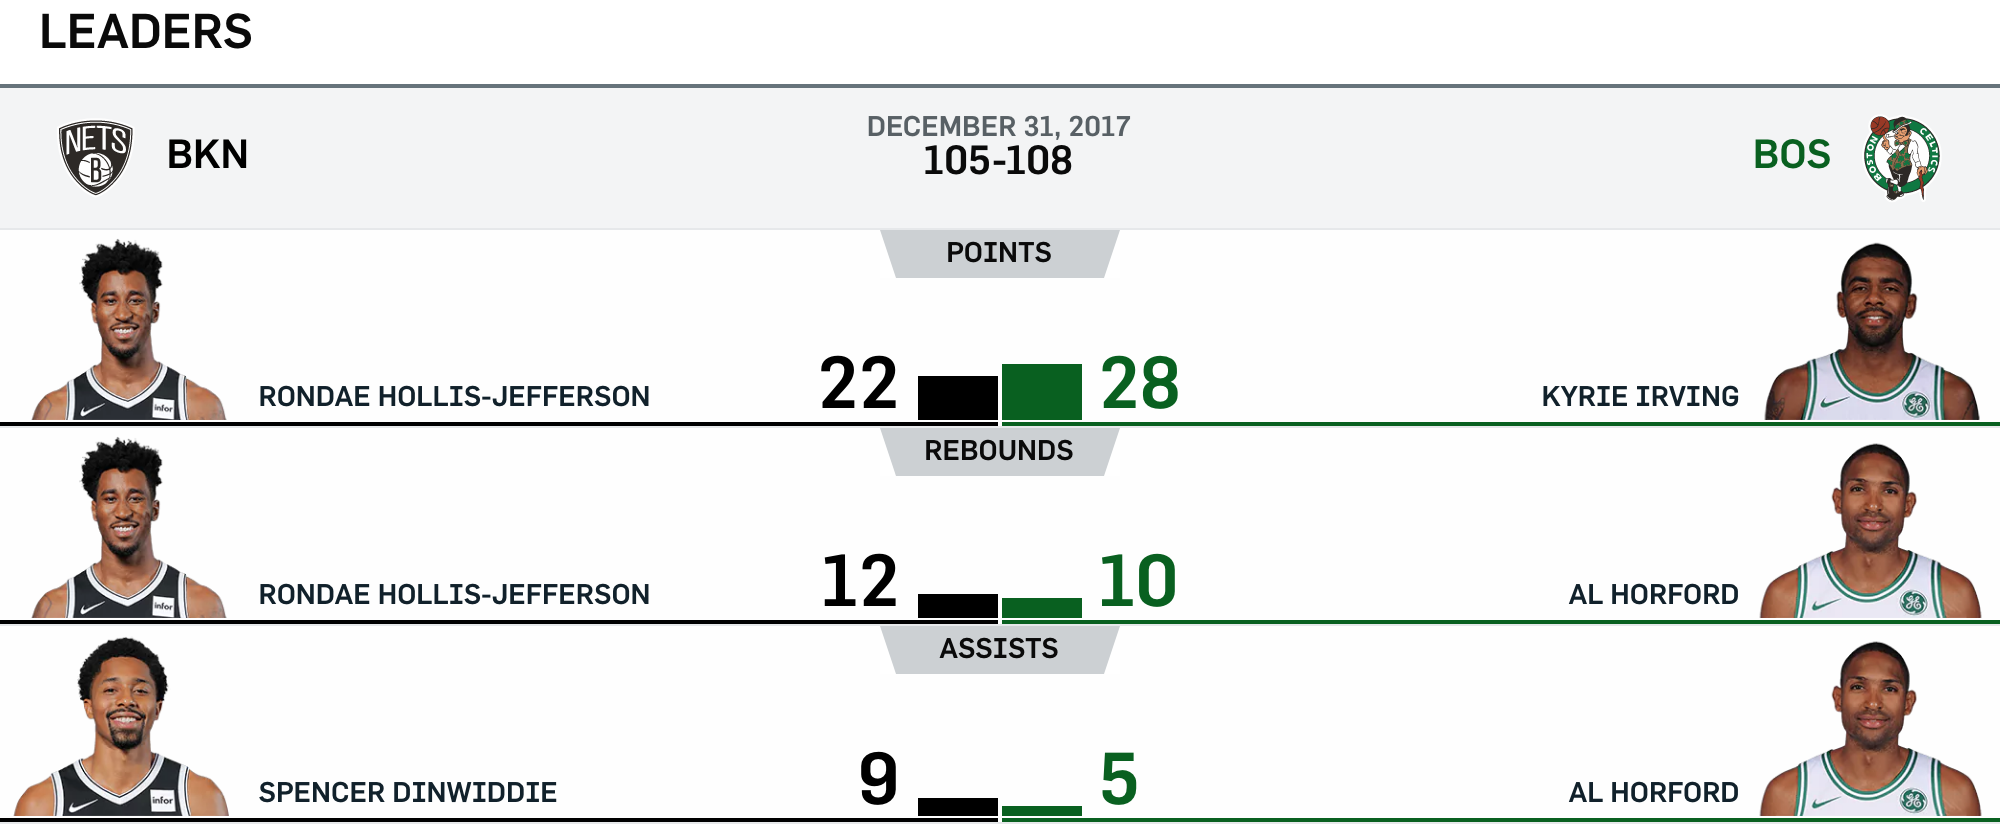 Nets at Celtics 12-31-17 Leaders